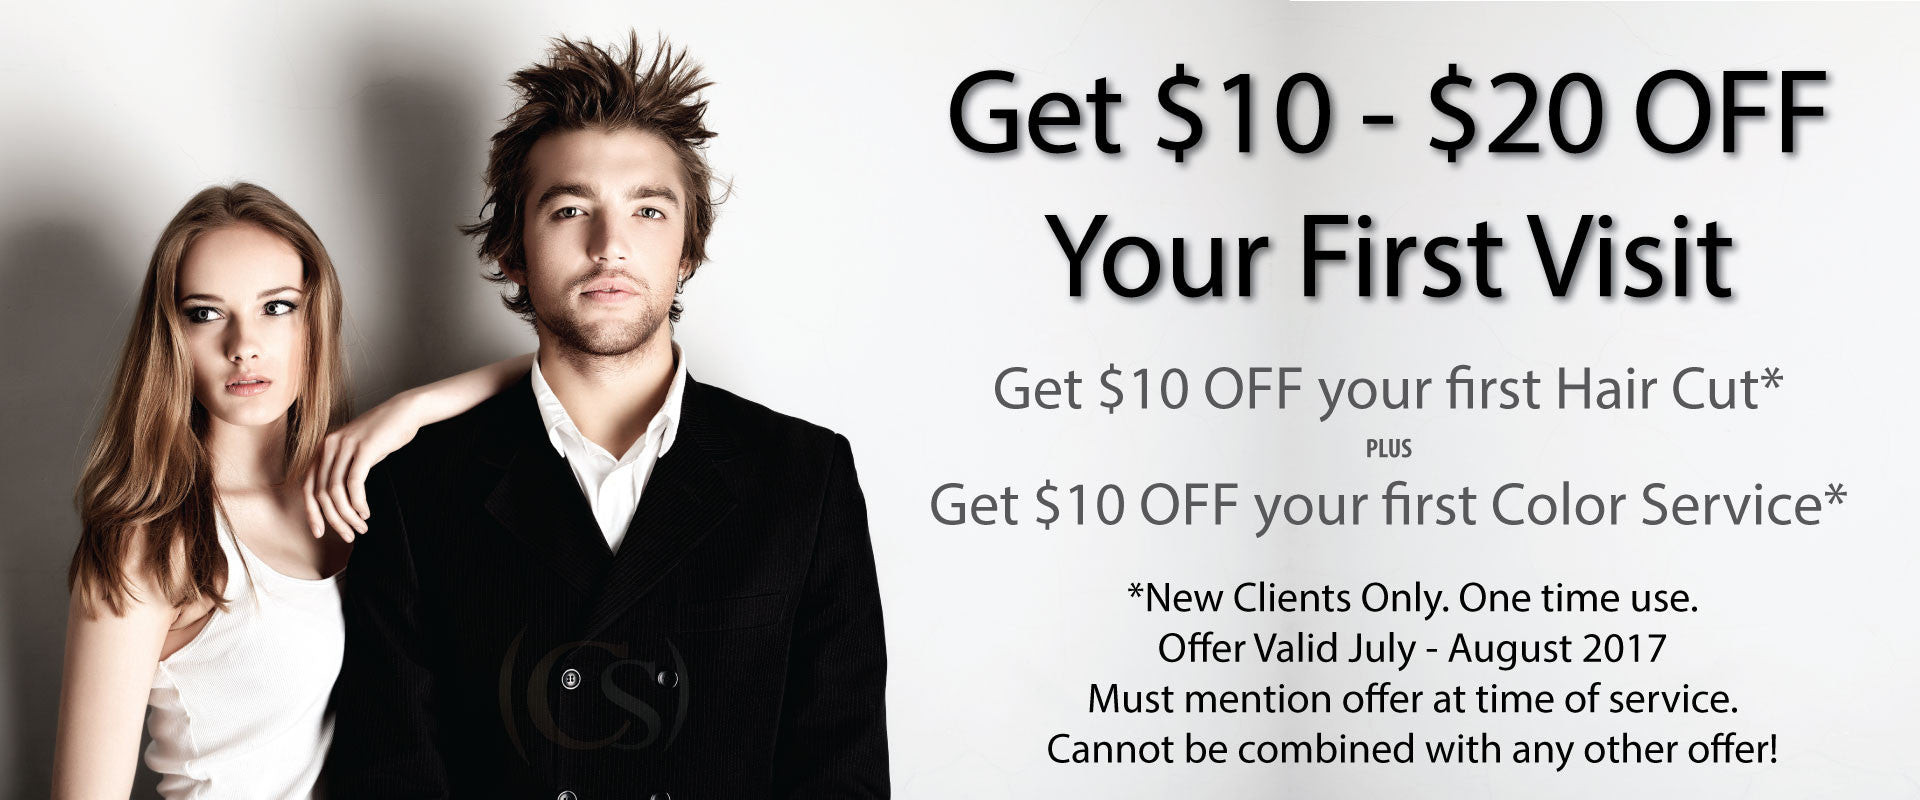 West Palm Beach Hair Salon New Client Offer